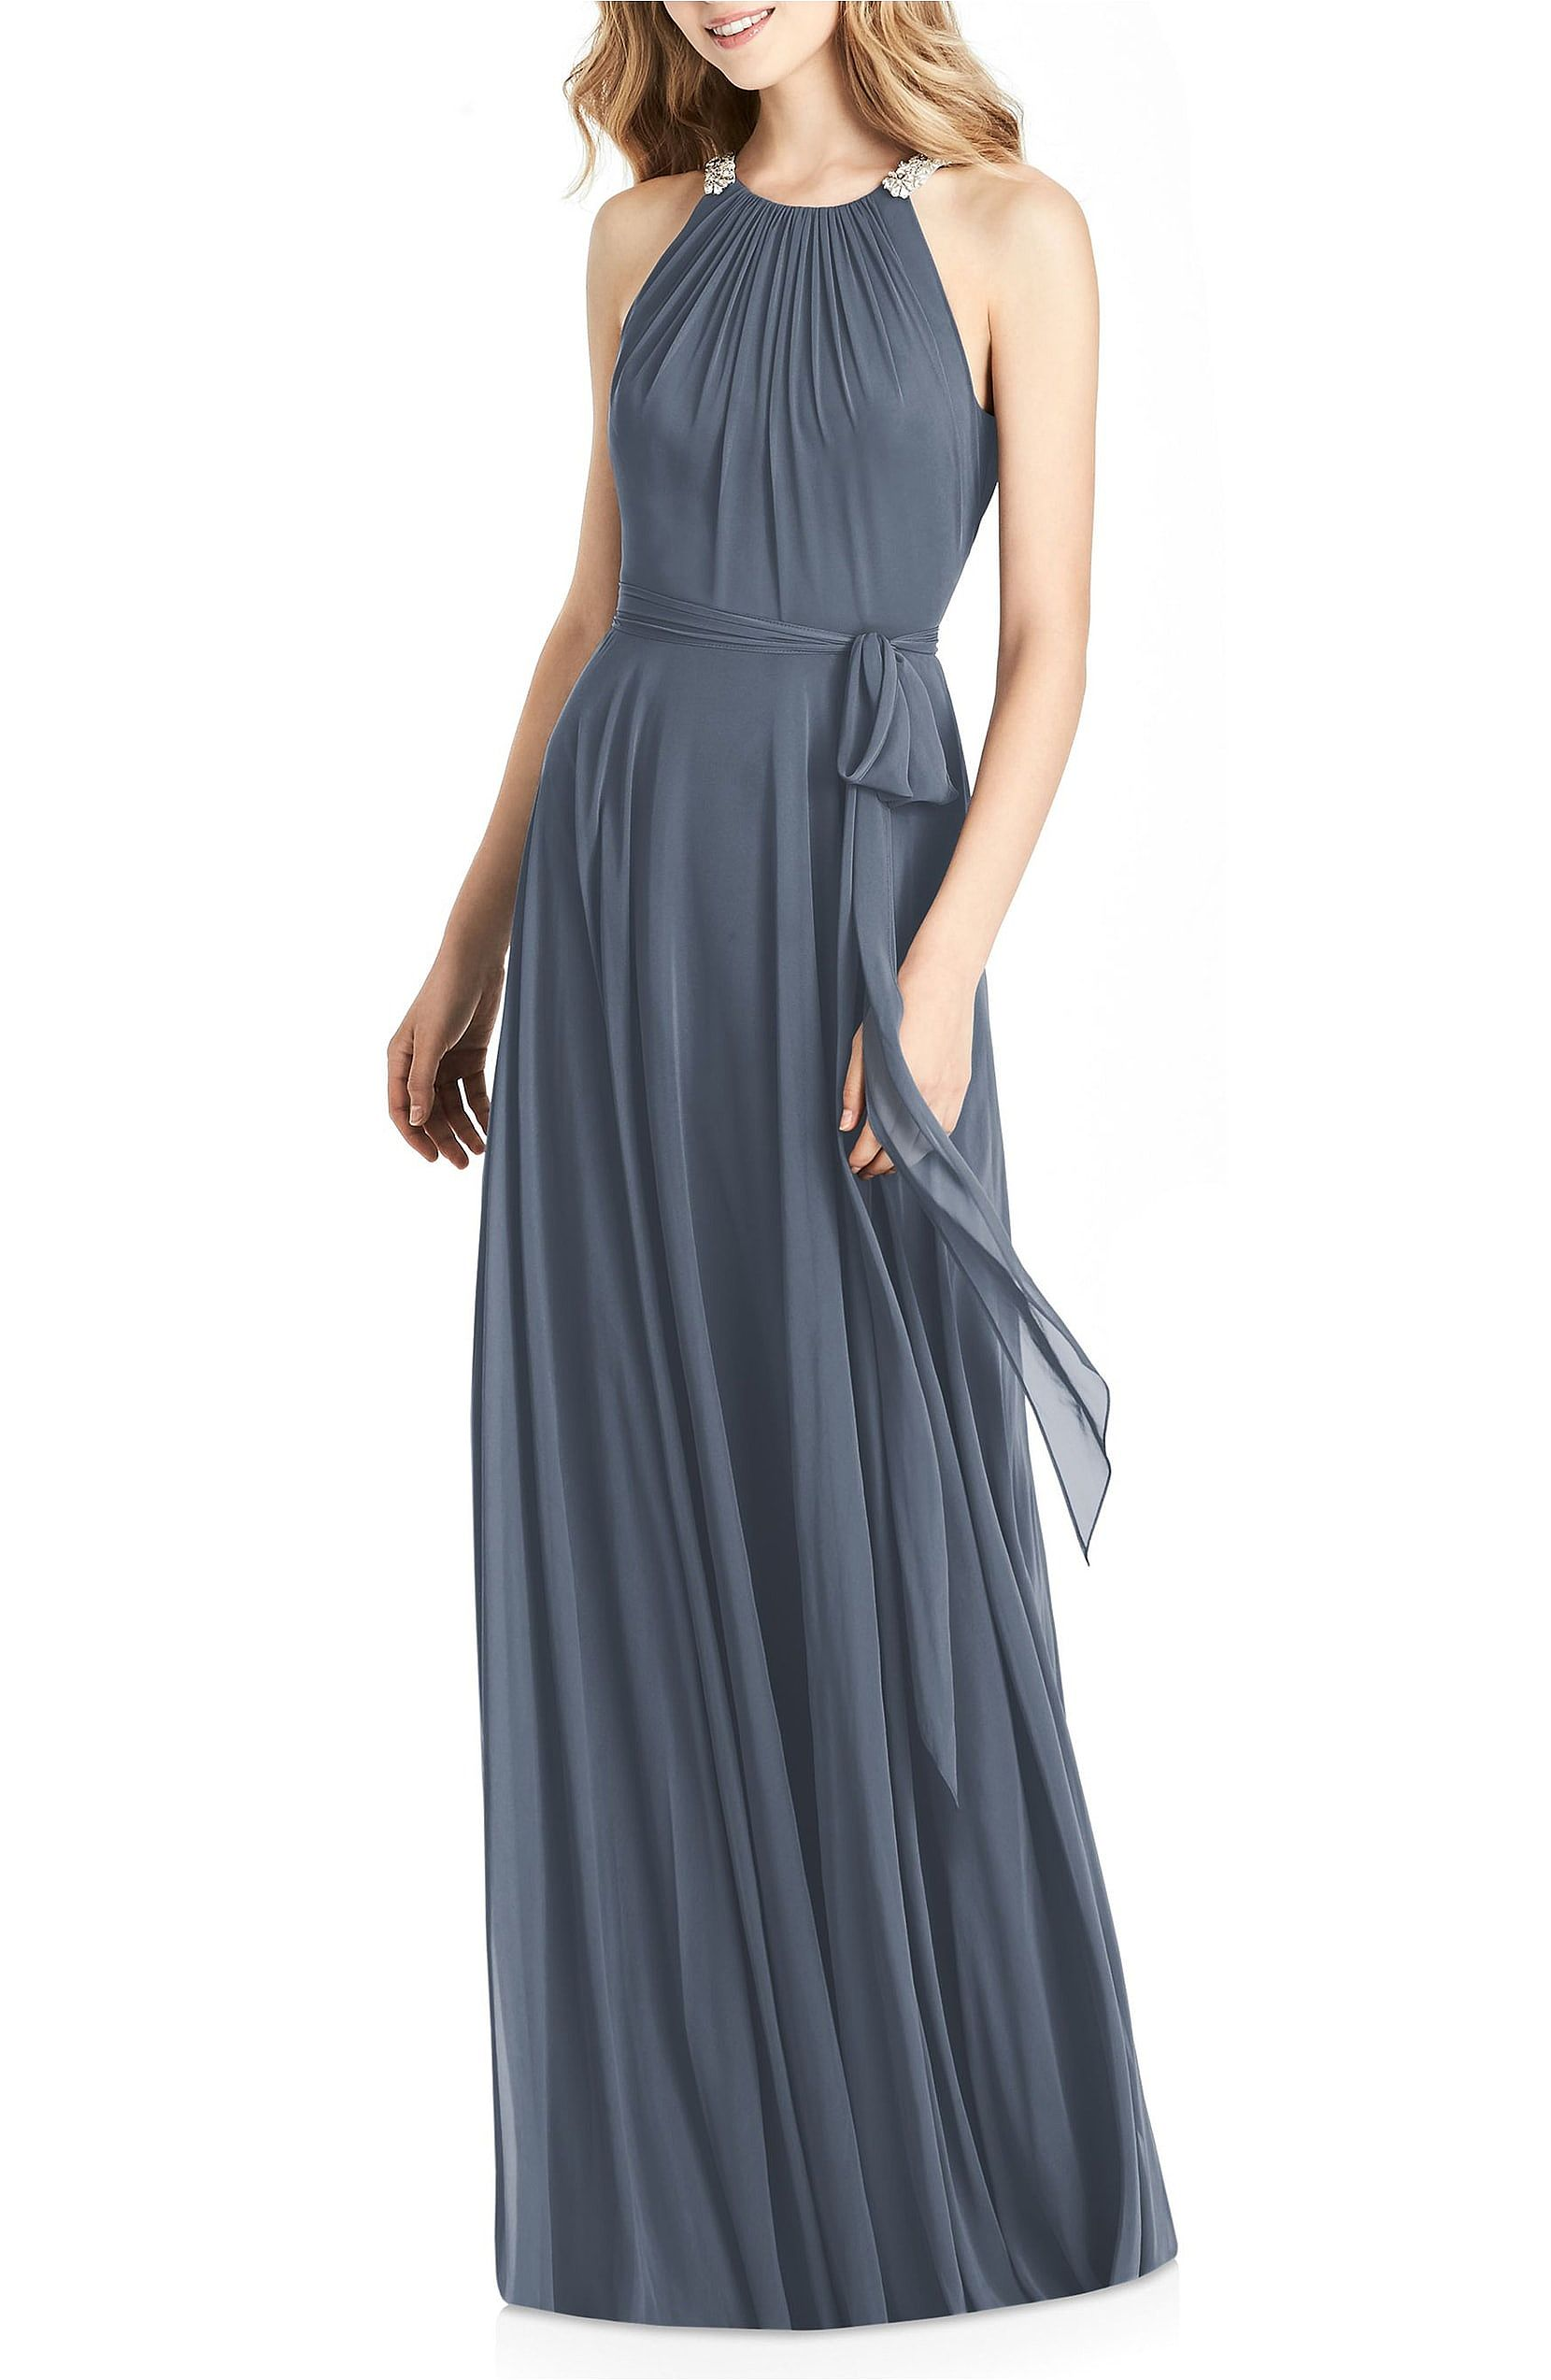 Beaded Grey Halter Ruched Bridesmaid Gowns